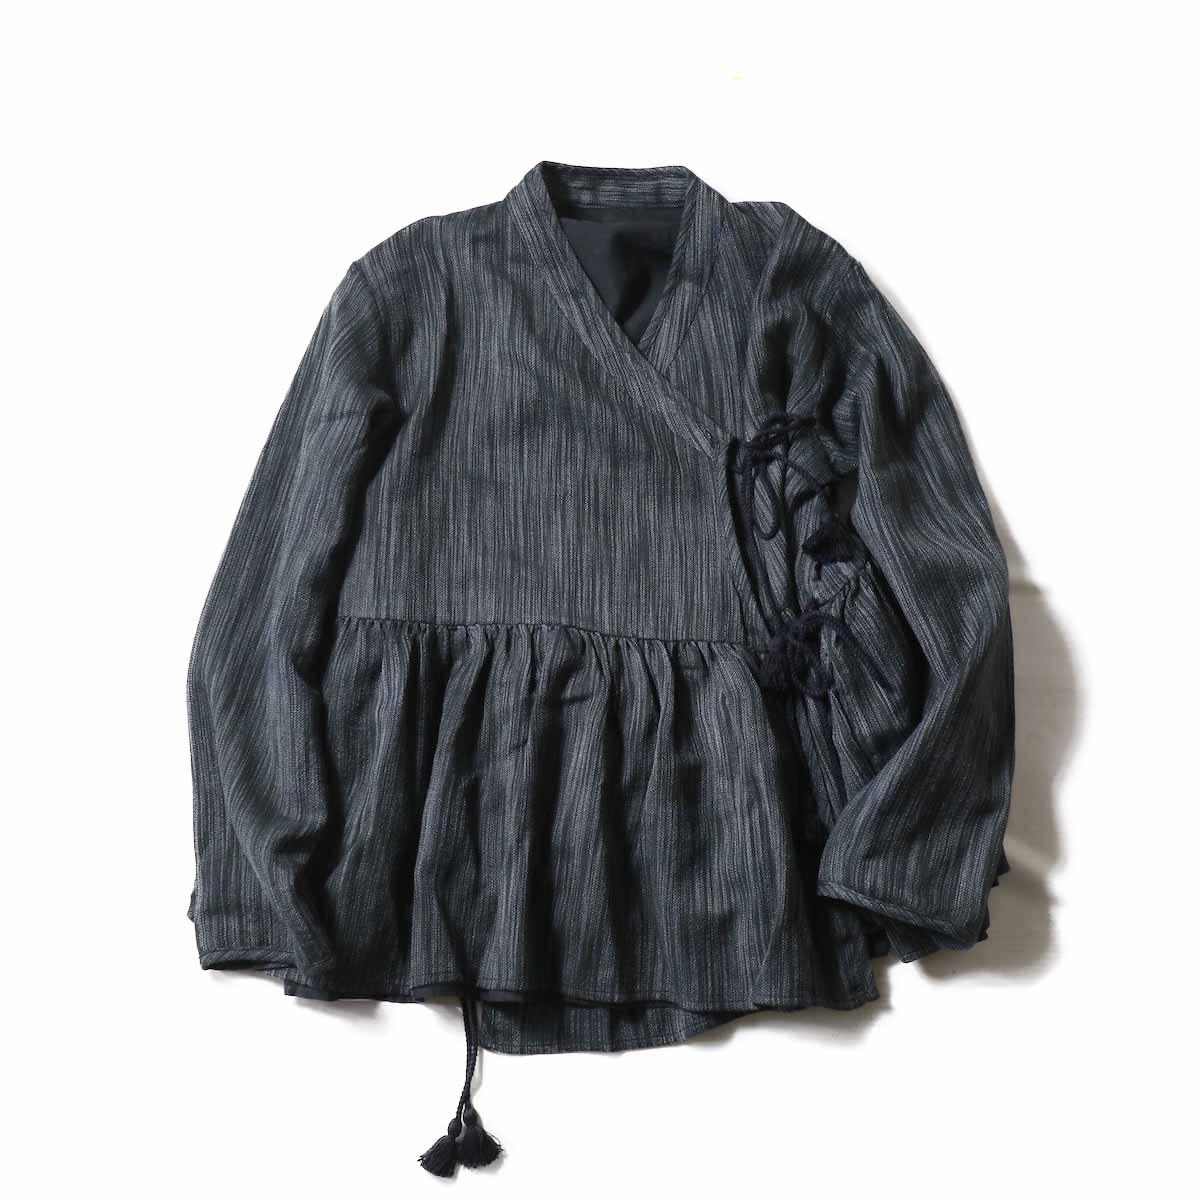 maison de soil / INMDS18641 WOOL REVERSIBLE GATHERED BROUSE -BLACK×GRAY